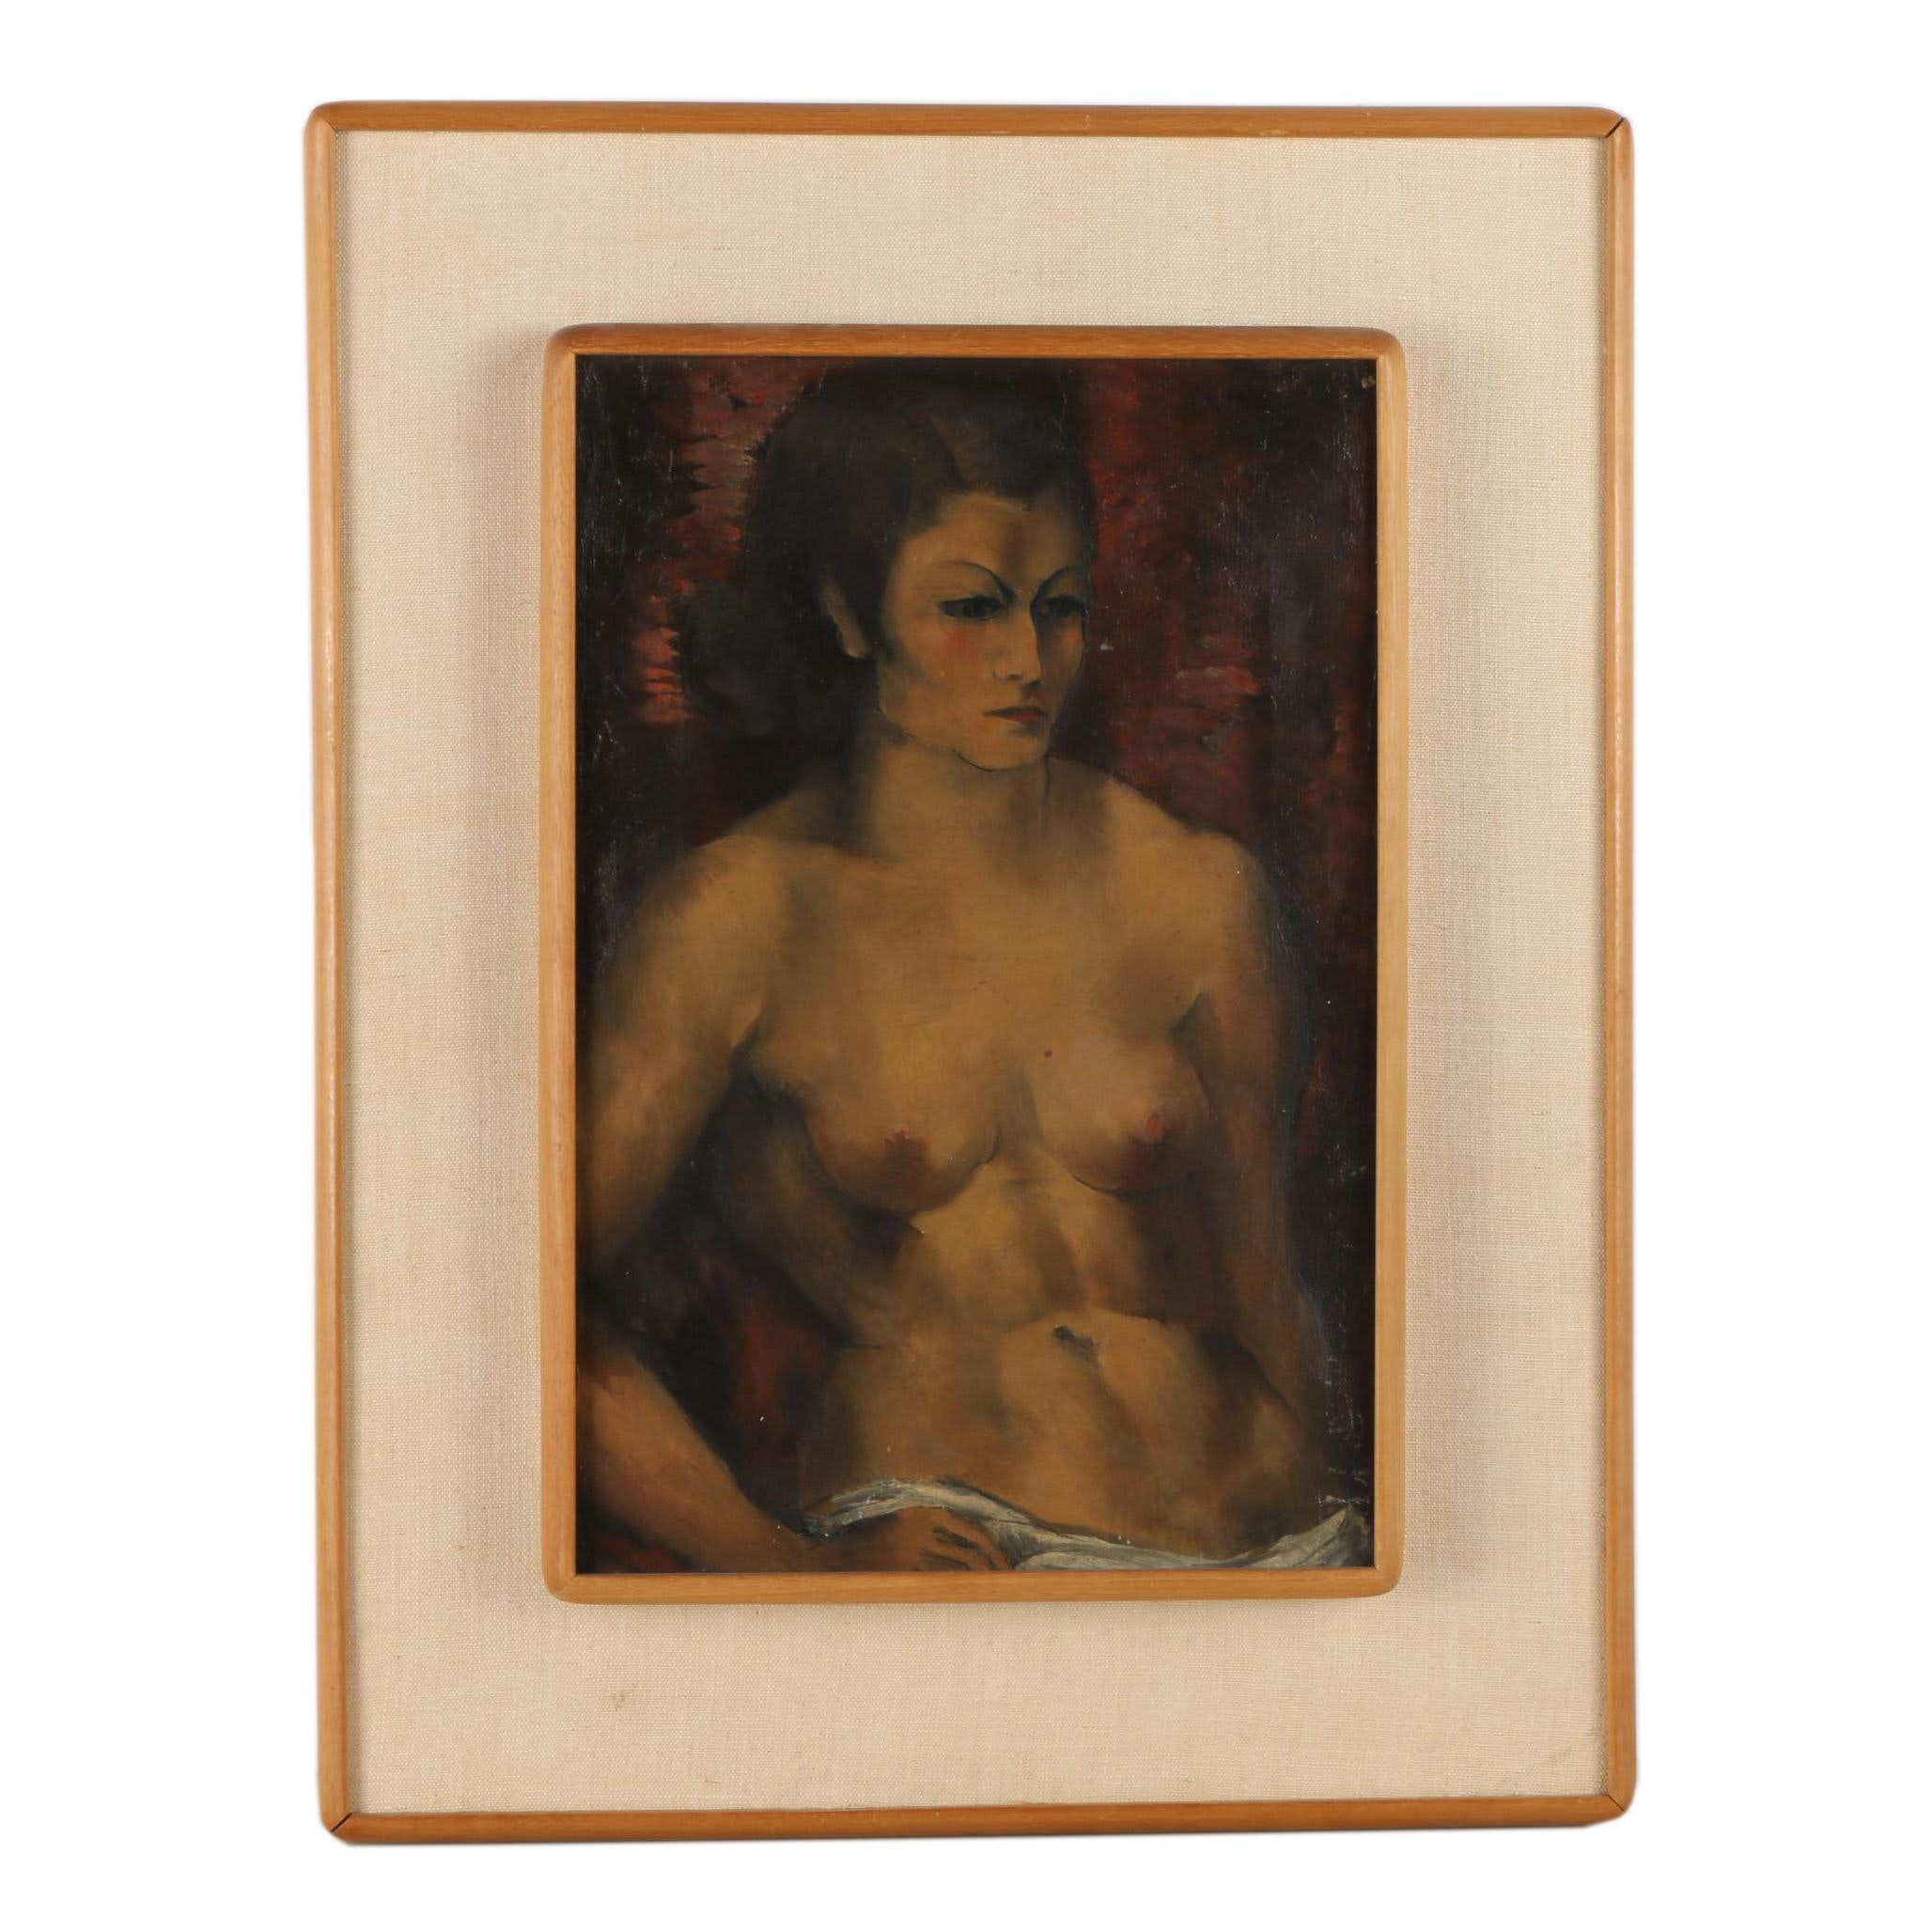 Attributed to Abraham Baylinson Oil Painting on Canvas of Figure Study